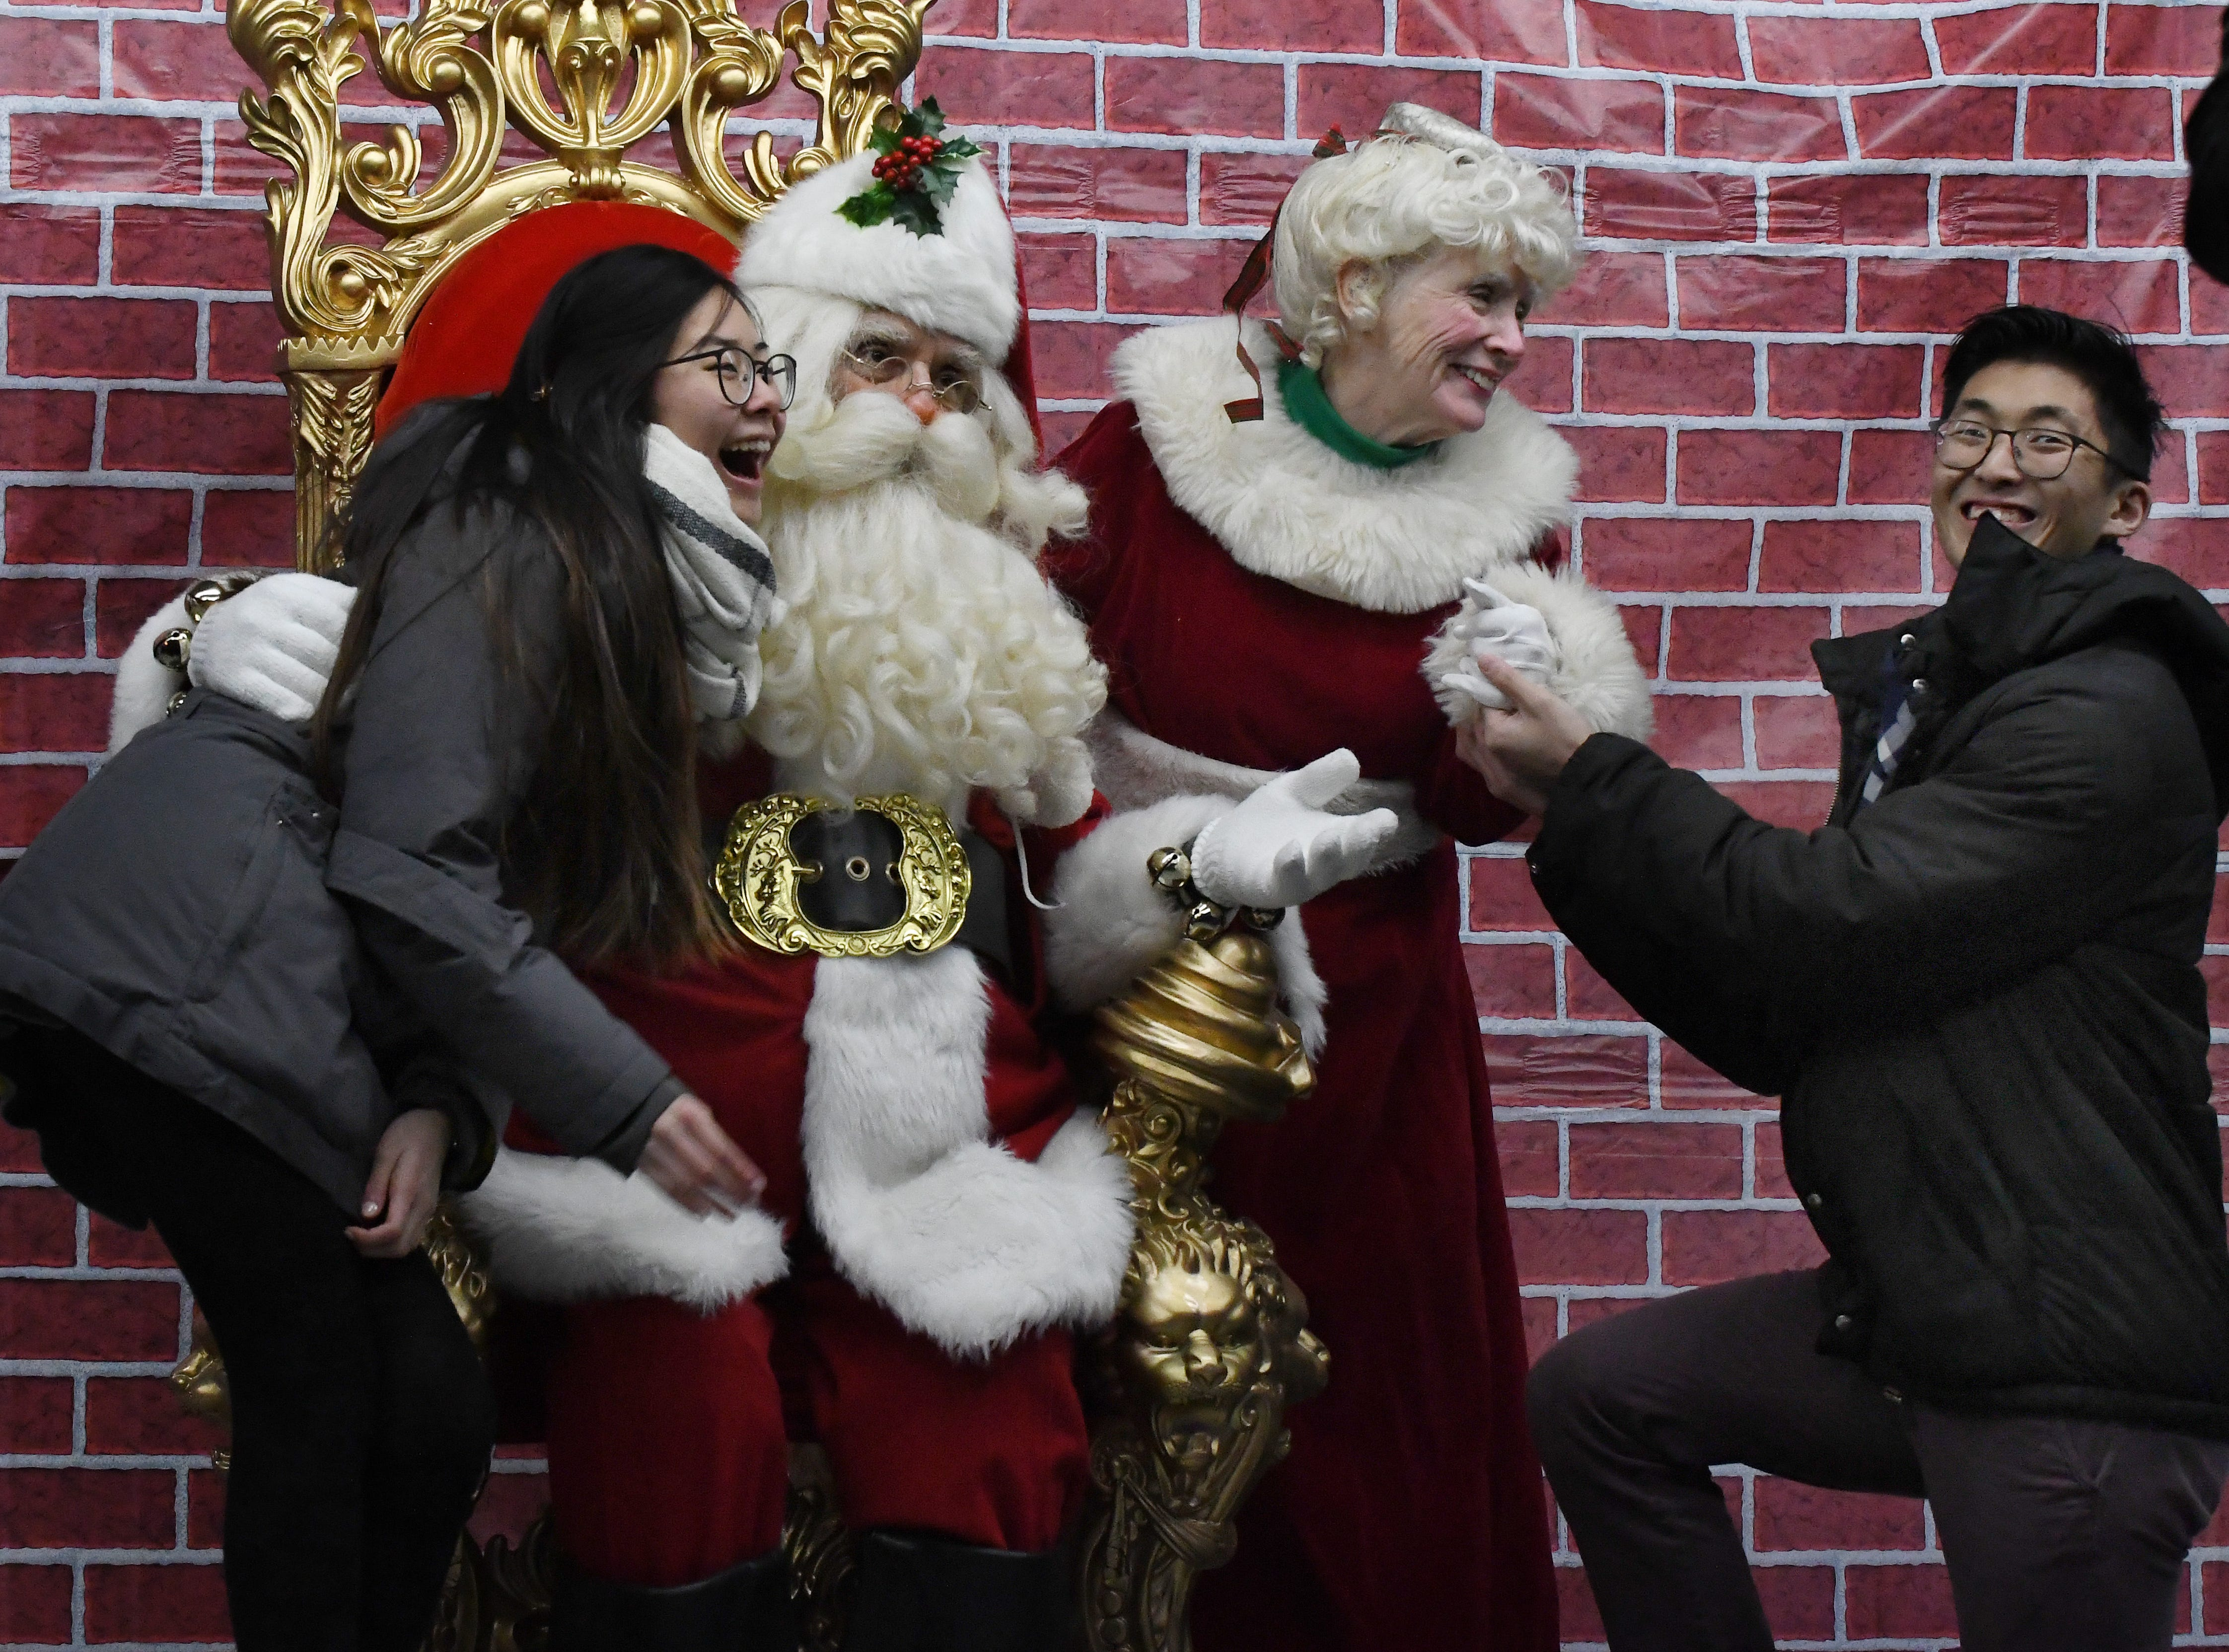 Phlevin Mei and Santa Claus are shocked as Mrs. Claus gets a surprising proposal from Brian Burton at The Big, Bright Light Show in downtown Rochester.